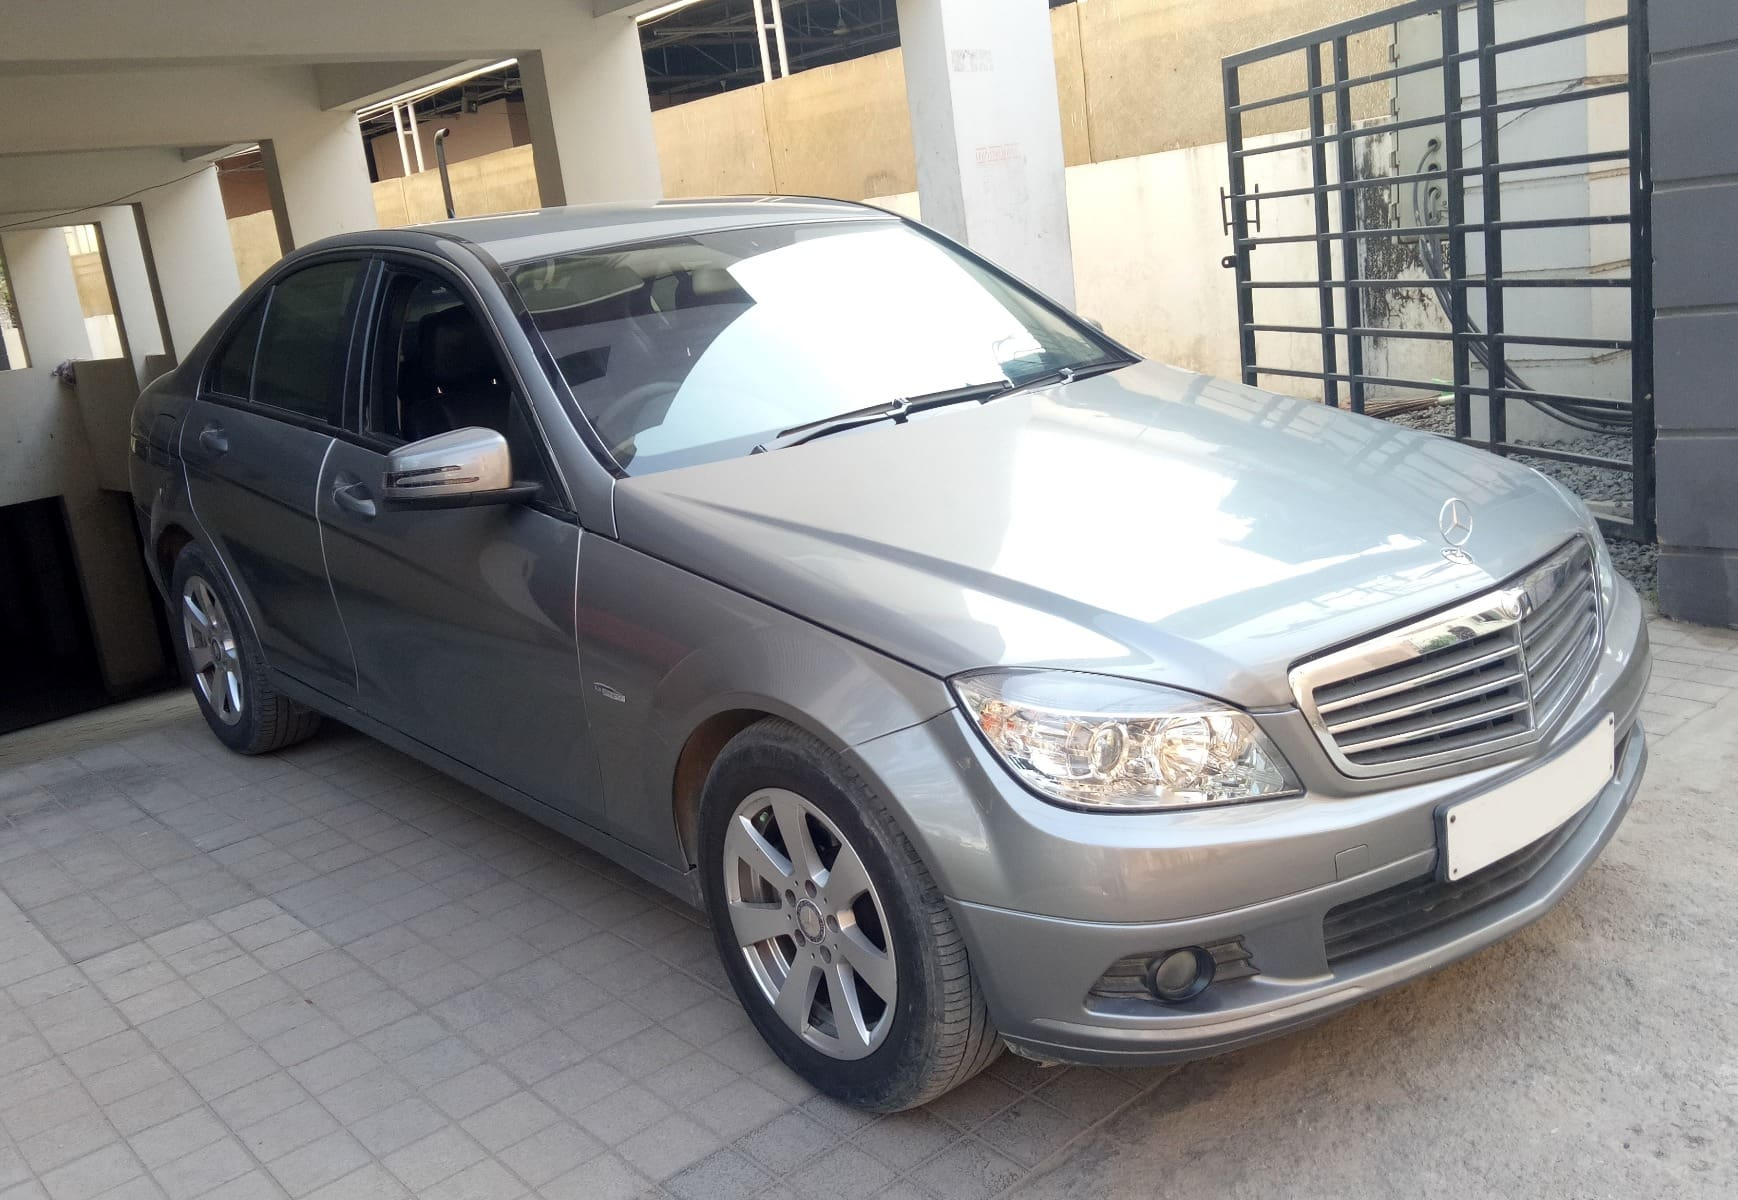 Mercedes-Benz C-Class 220 CDI AT